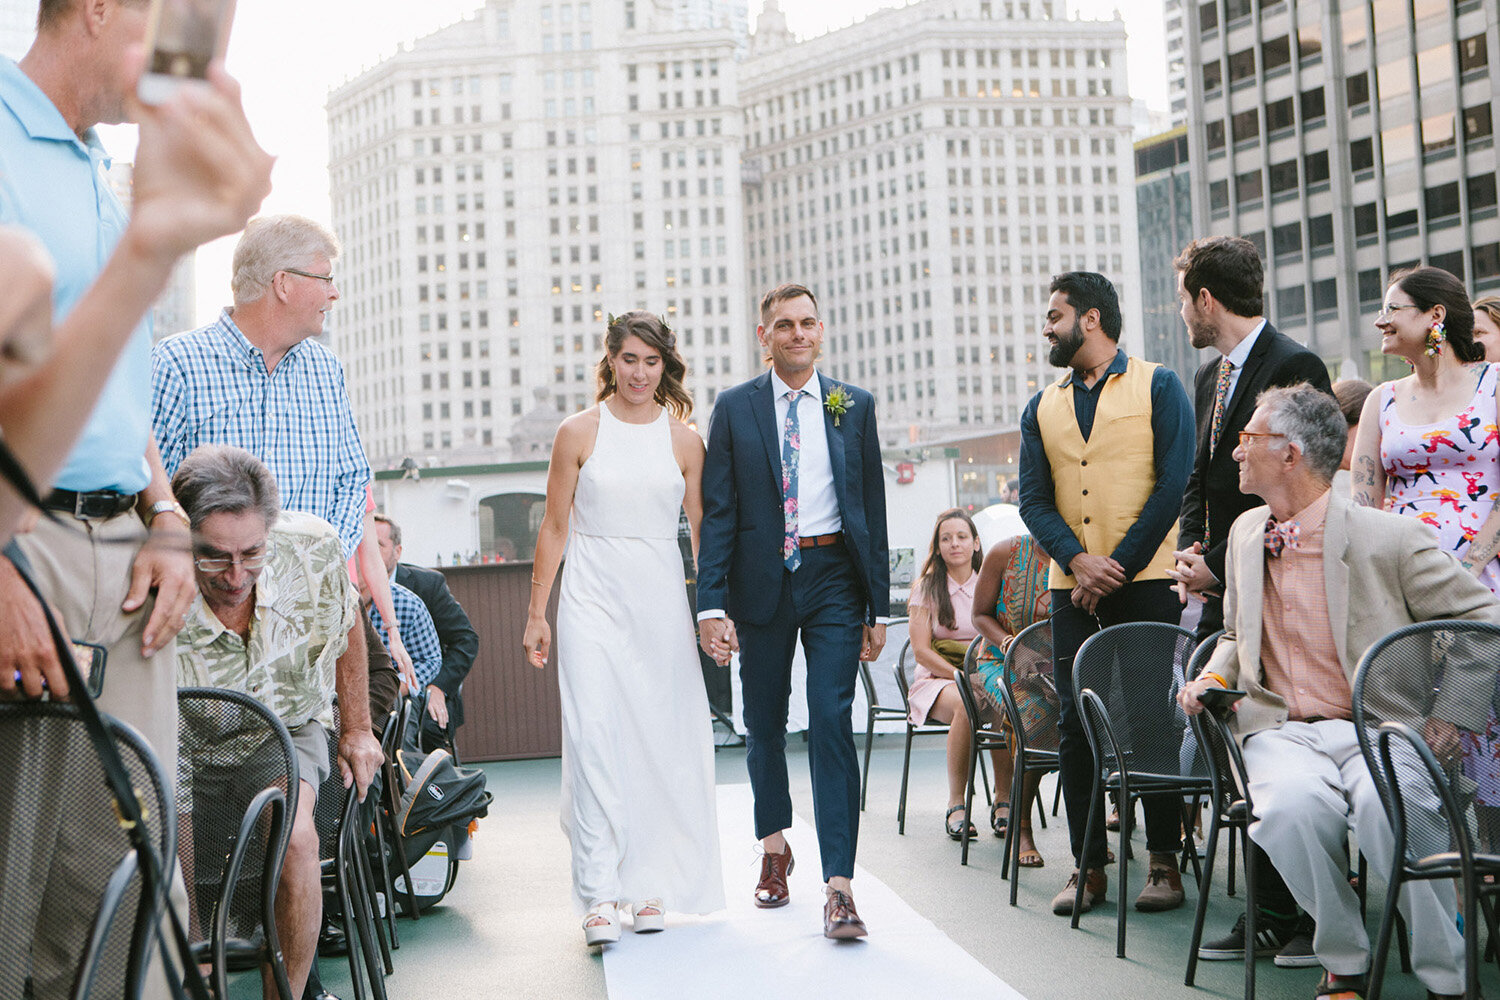 bride-and-groom-walking-down-aisle-downtown-chicago.jpg